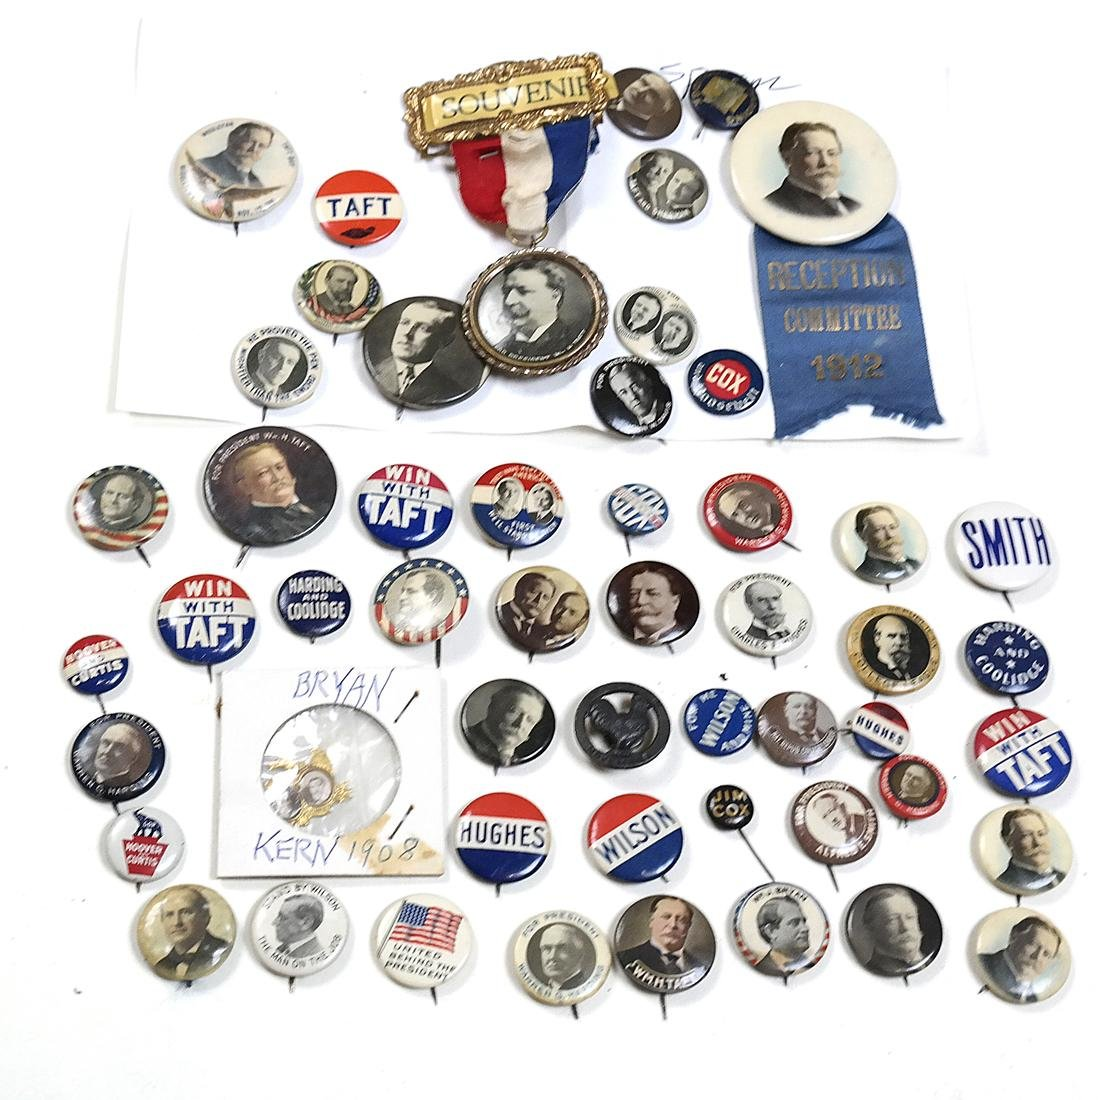 GROUP OF EARLY 20TH CENTURY CAMPAIGN BUTTONS